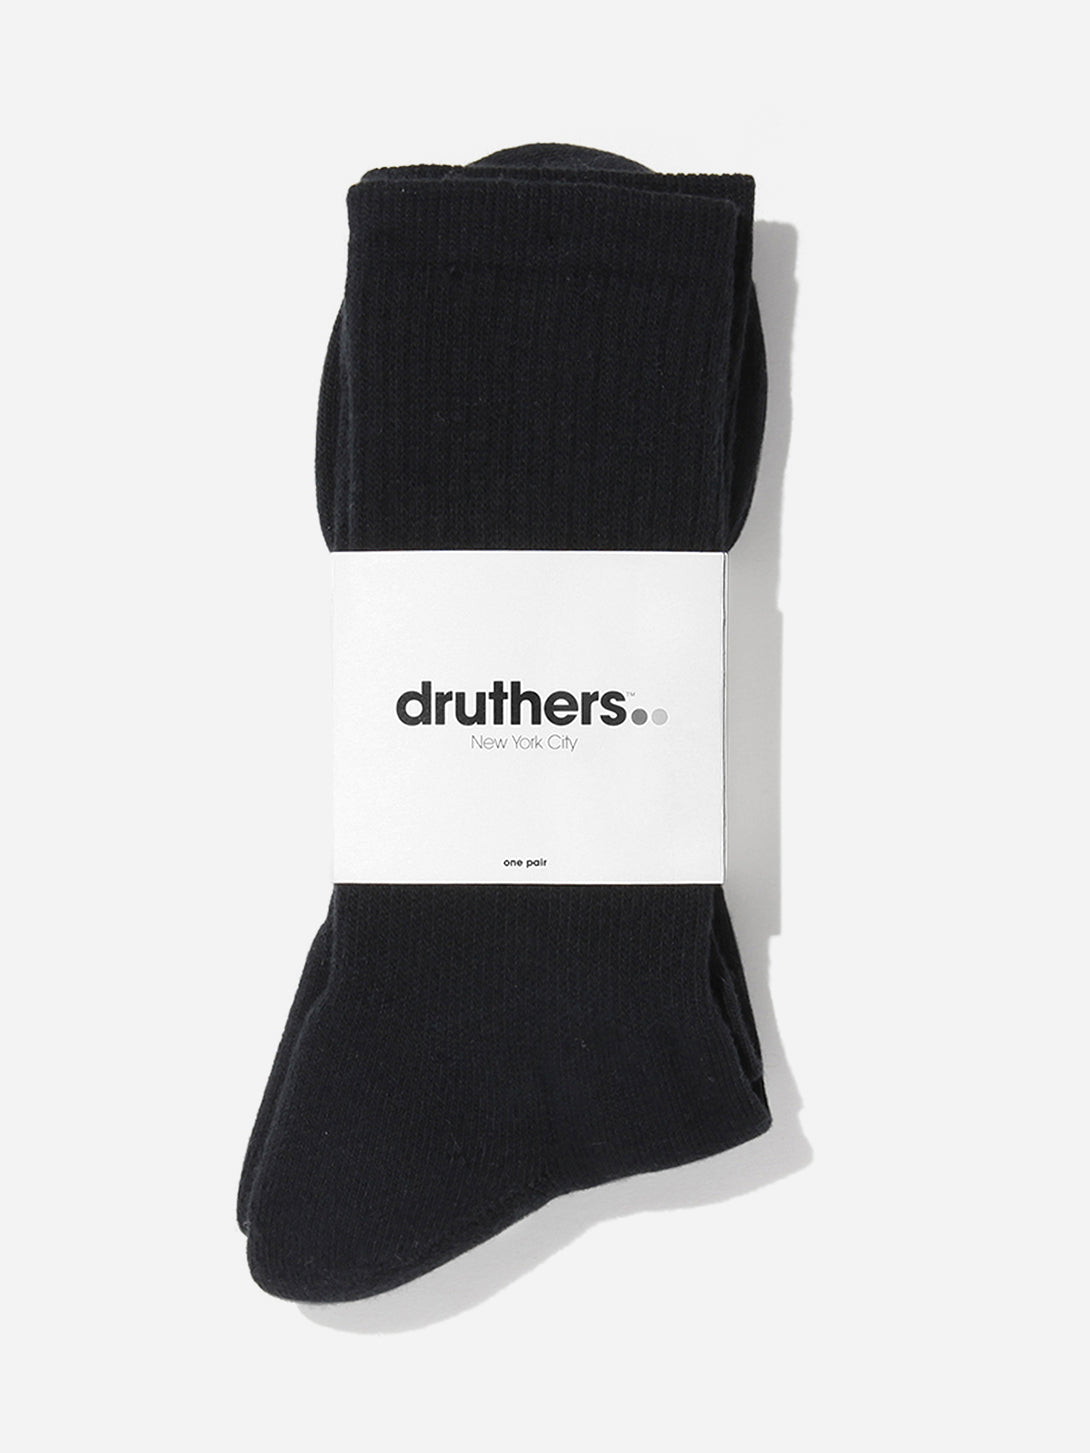 BLACK druthers socks for ons clothing